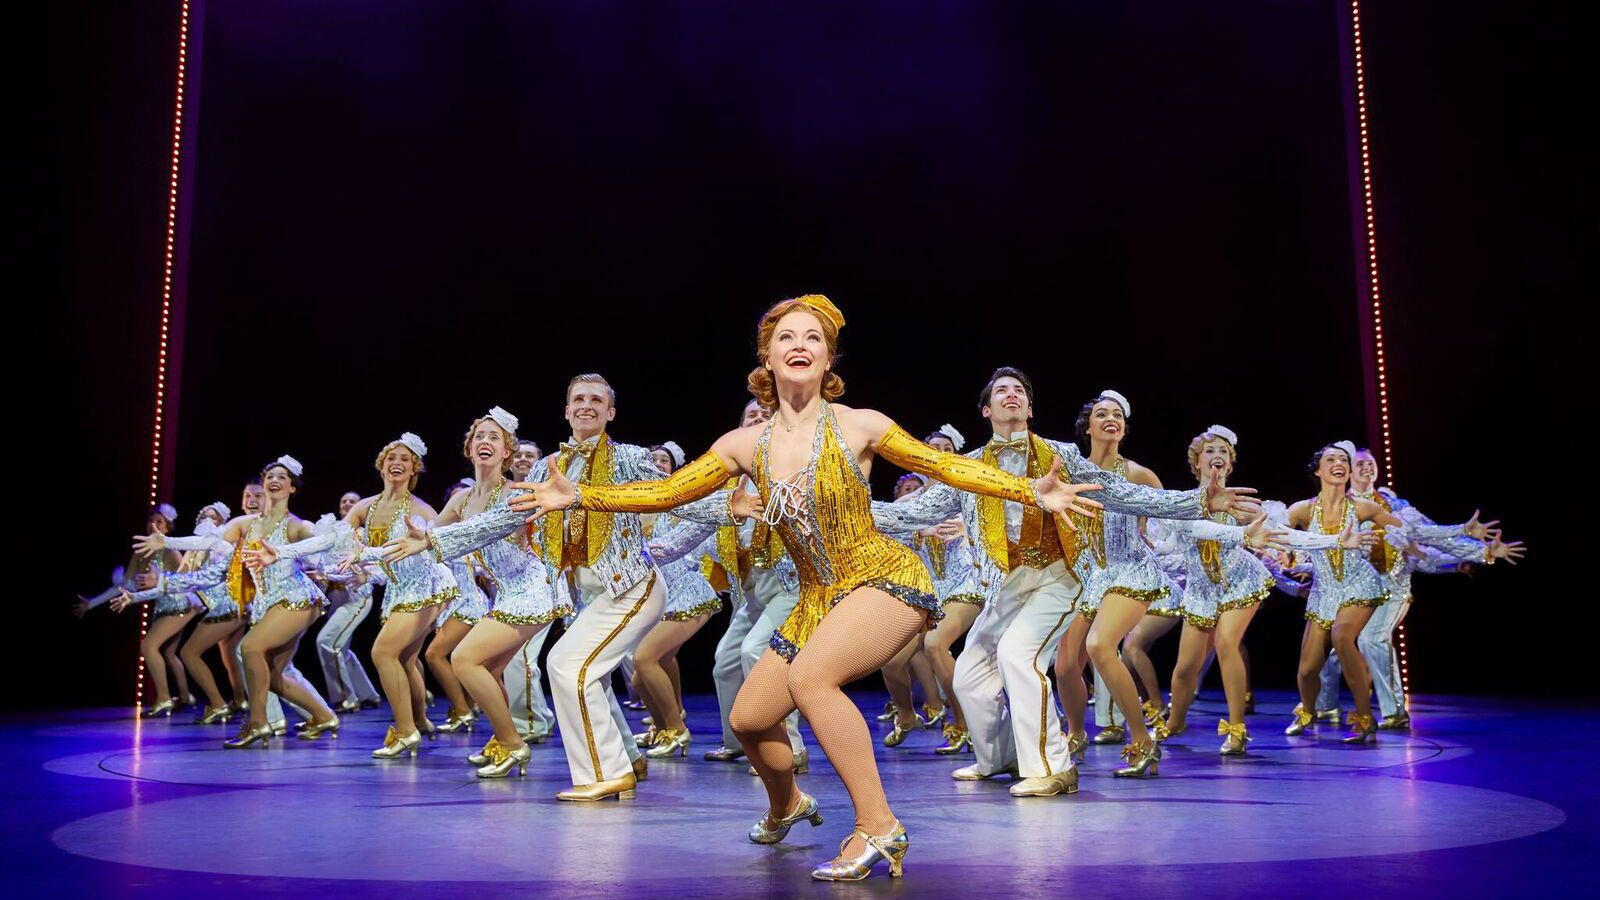 Dance number during theatre show 42nd Street in London